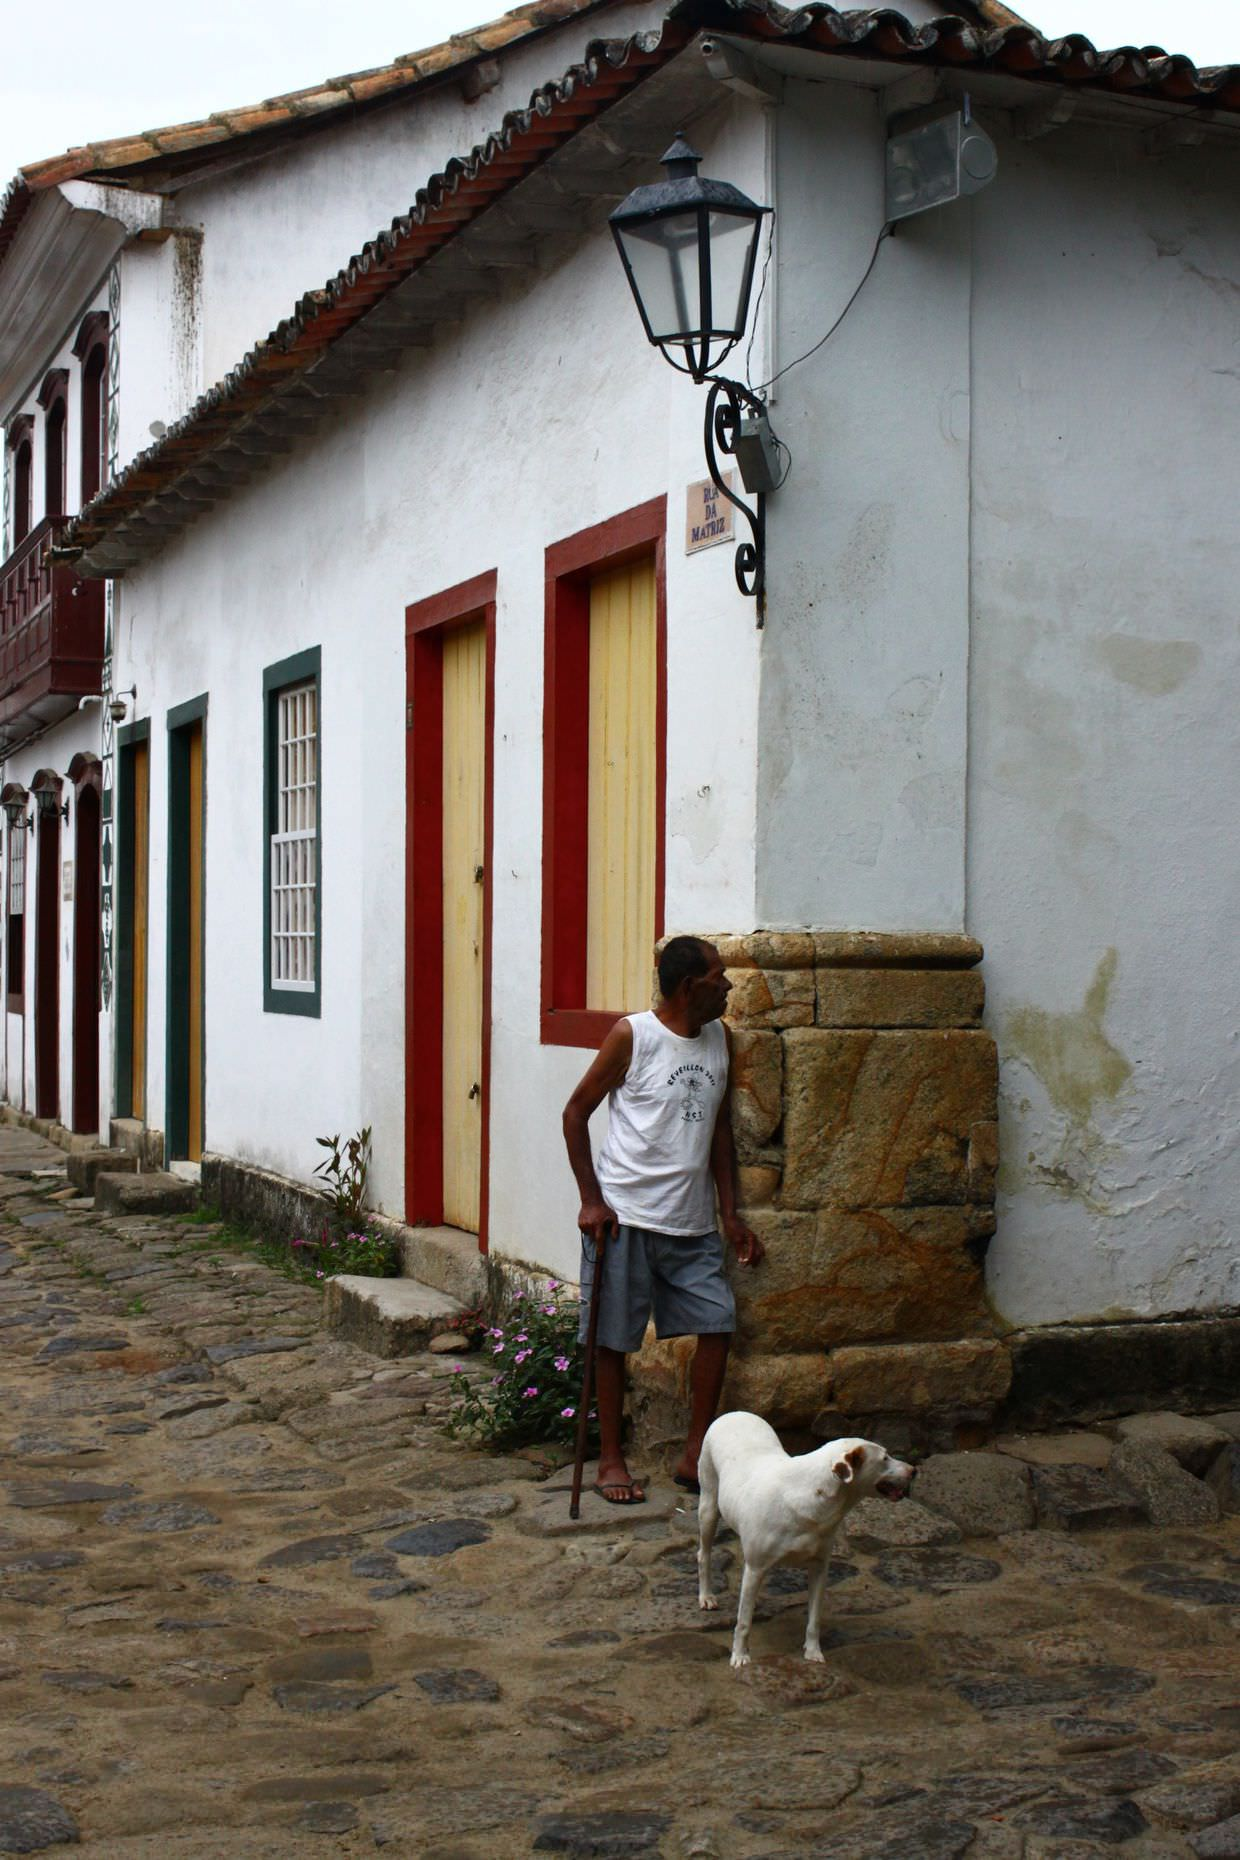 Resident and dog in Paraty